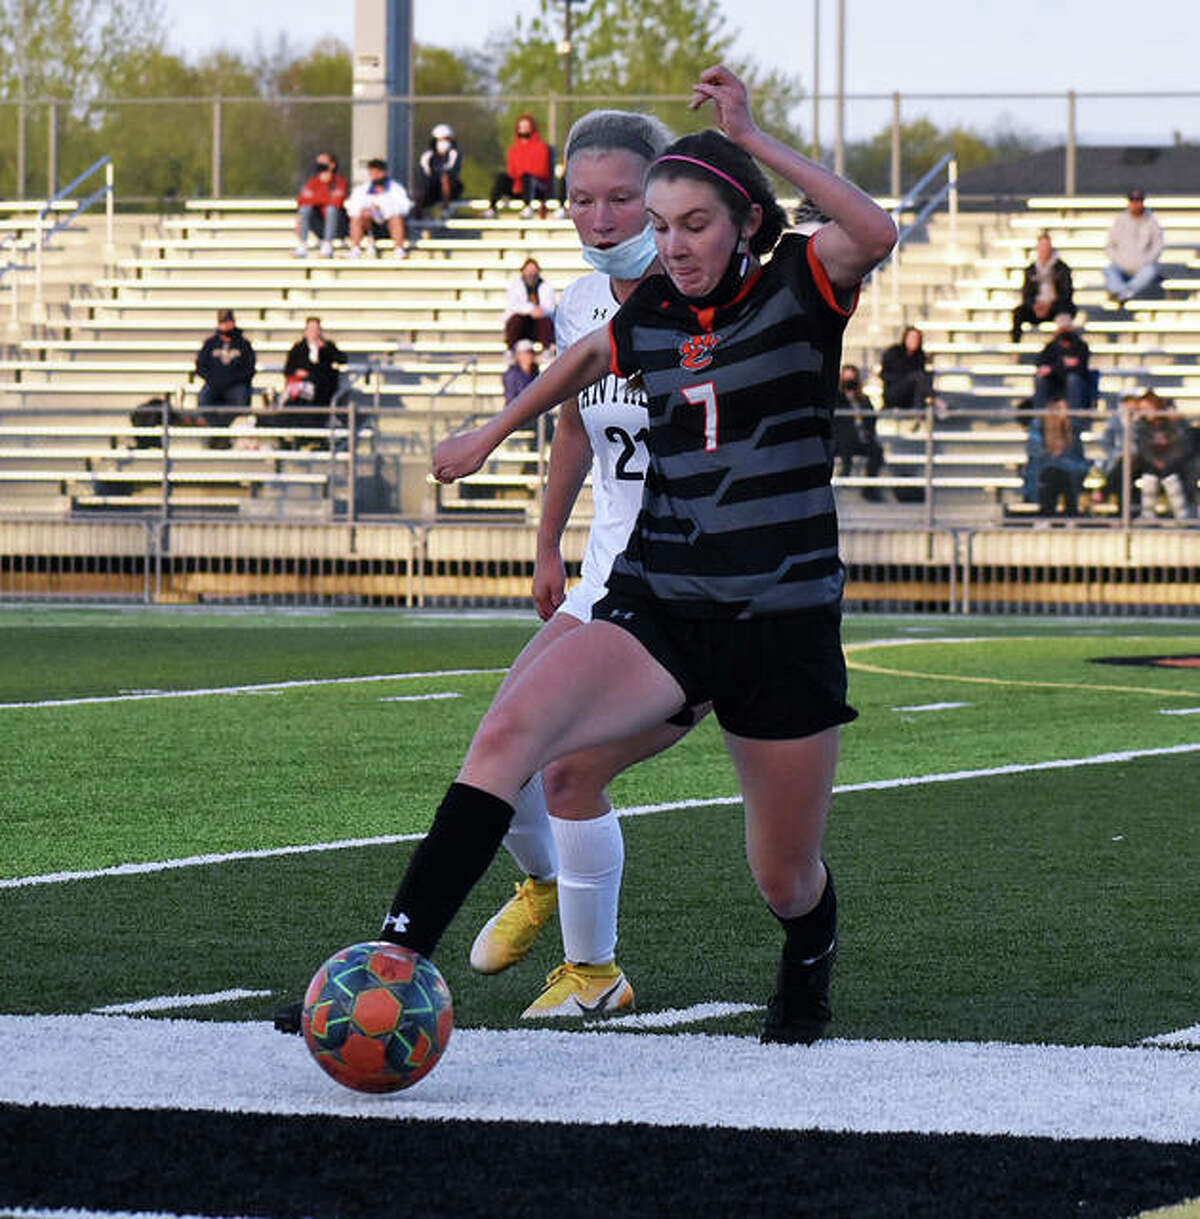 Edwardsville's Jadyn Renth, front, battles for possession at midfield during the first half of Thursday's game against O'Fallon inside the District 7 Sports Complex.